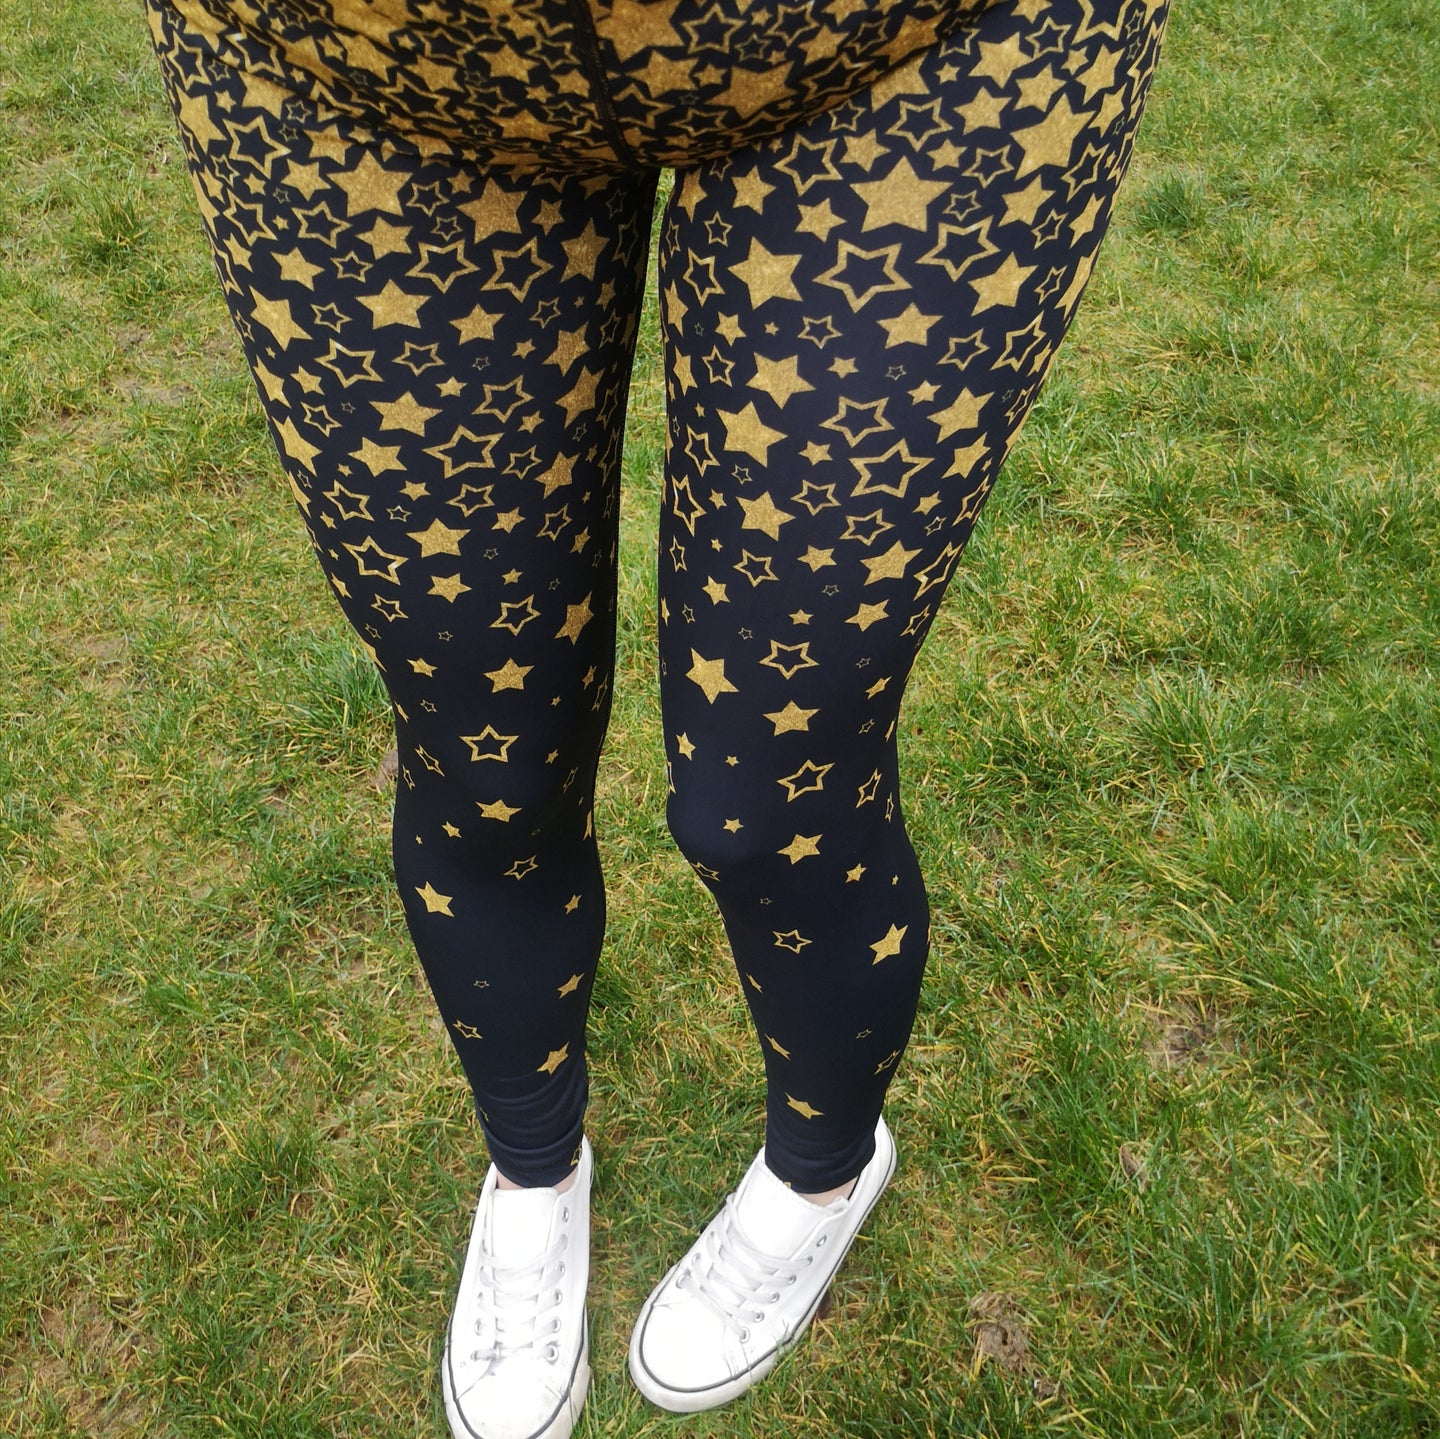 Luesque VERSION 3 Starlight Sprinkle Full Length Leggings